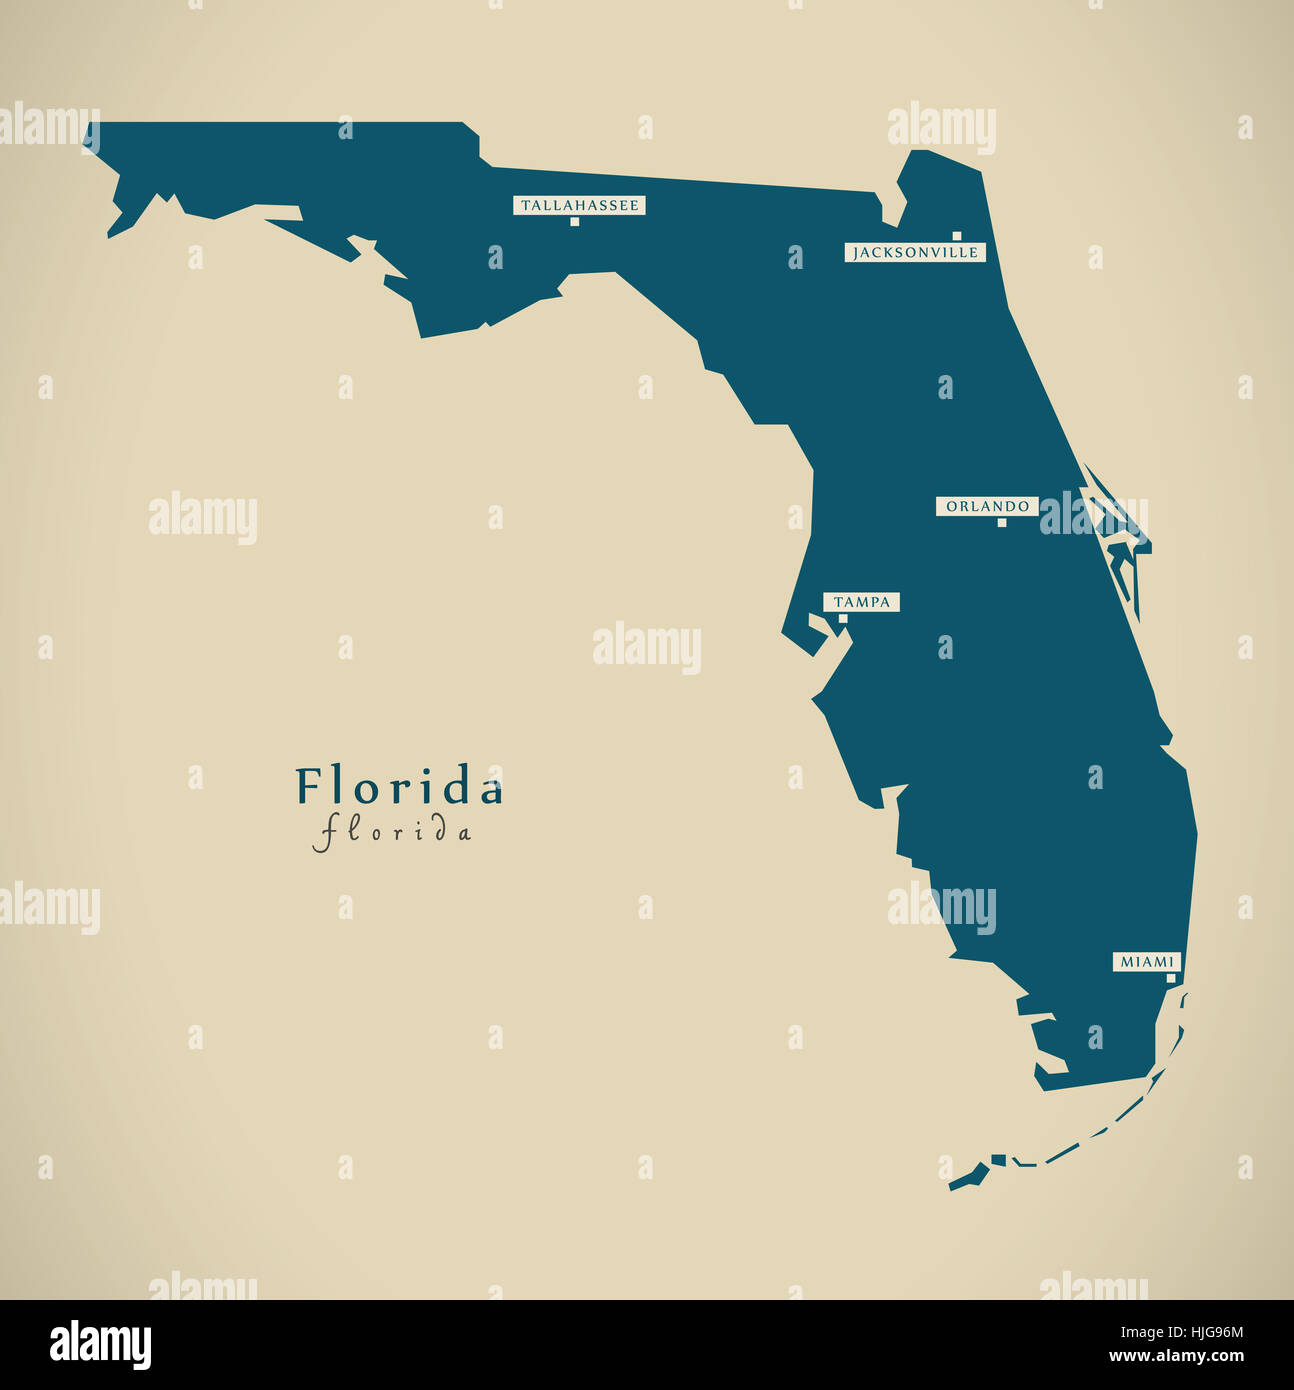 Map Of Florida With Counties.Map Of Florida Counties Stock Photos Map Of Florida Counties Stock